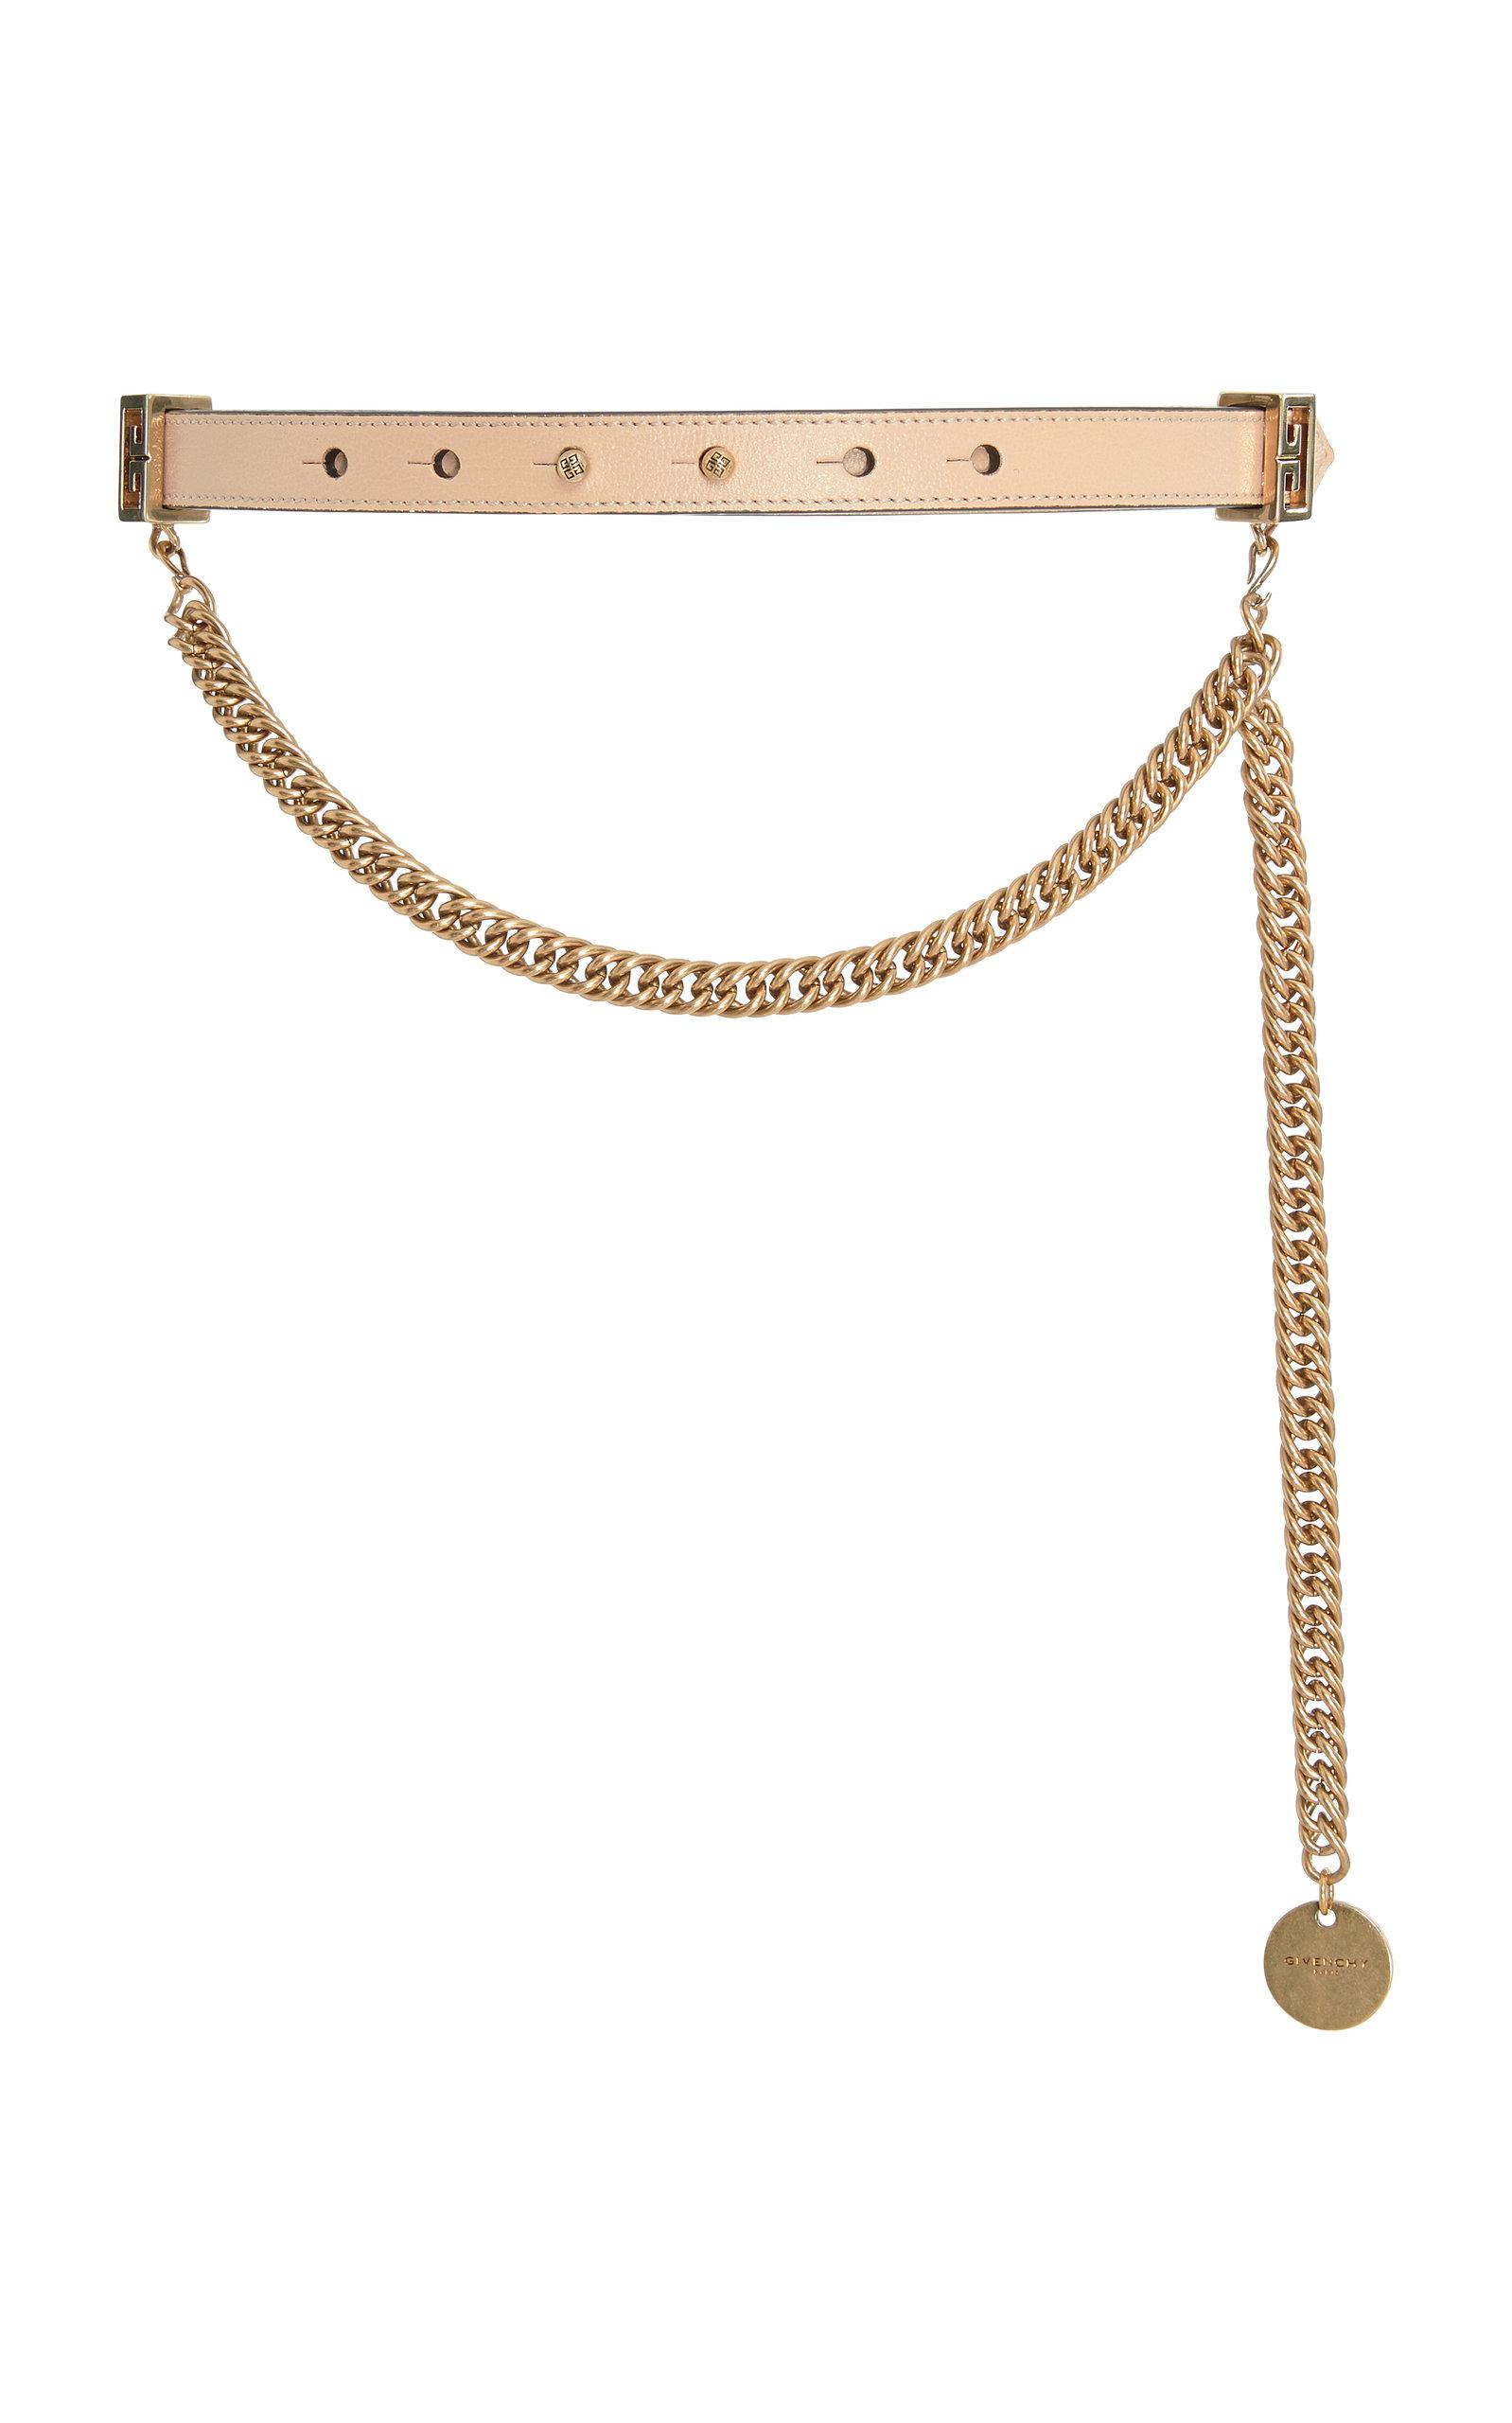 Chain-Trimmed Leather Waist Belt Givenchy JR0fdcyAA